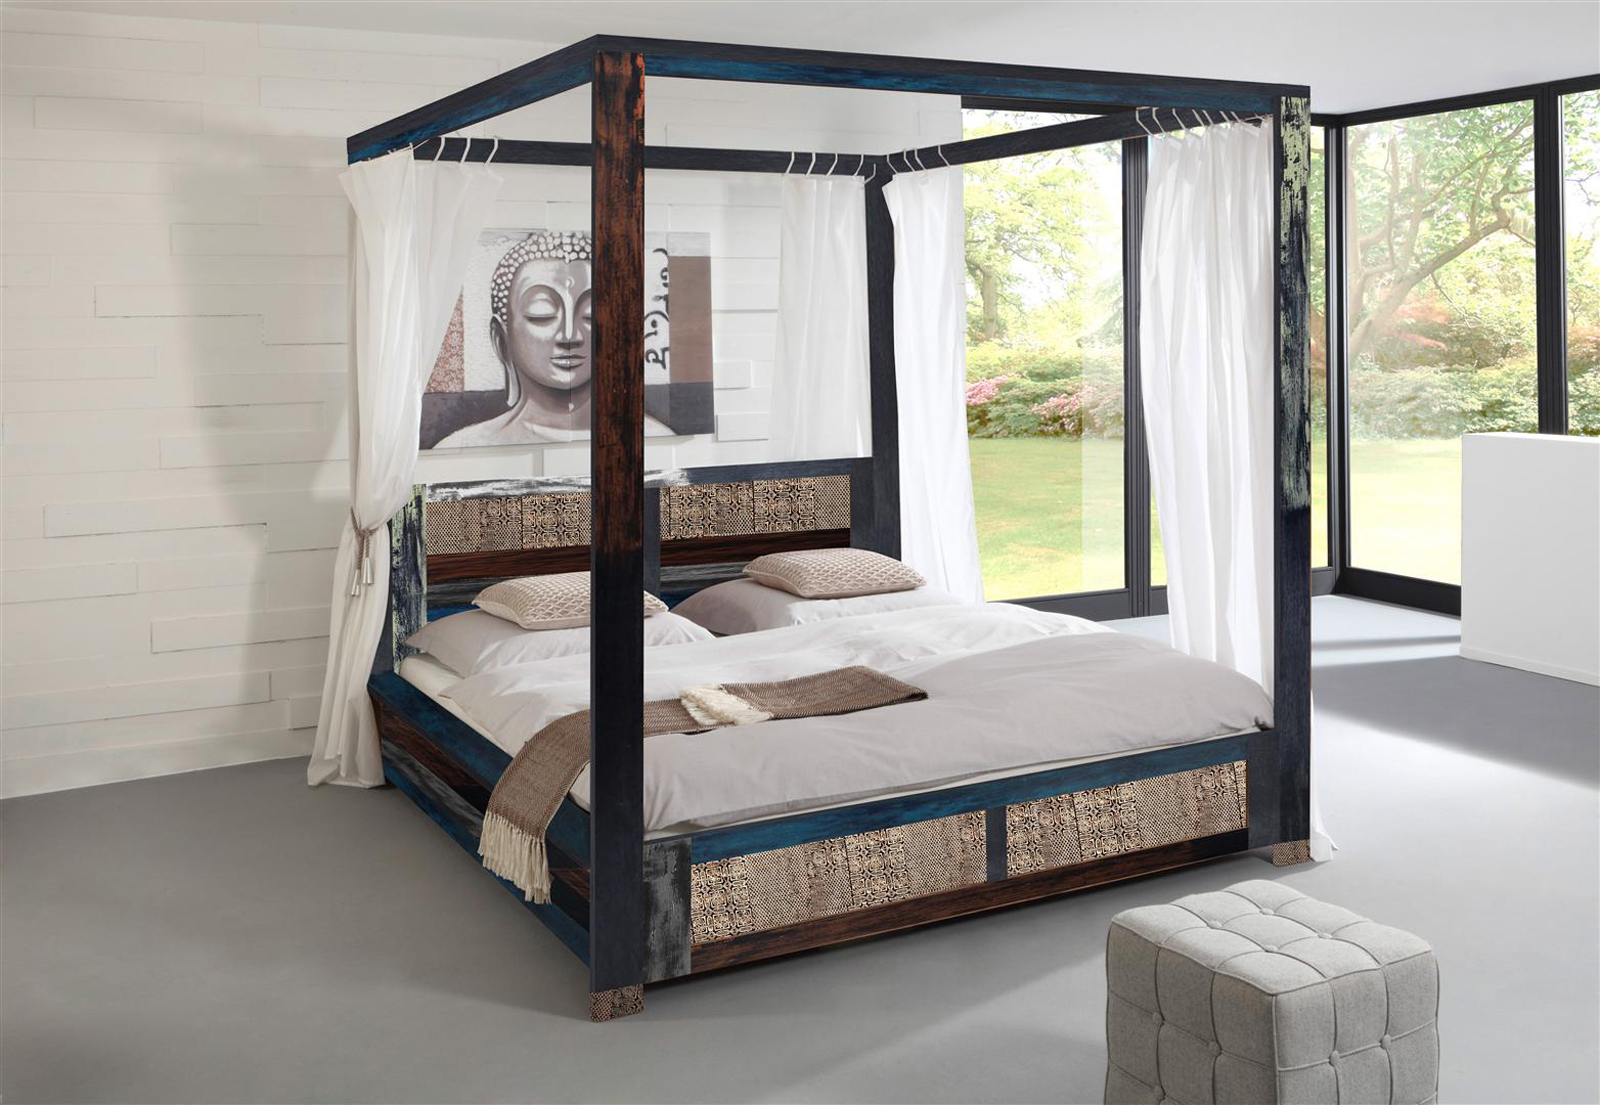 sam vintage himmelbett holzbett metall 160 x 200 cm bunt goa auf lager. Black Bedroom Furniture Sets. Home Design Ideas